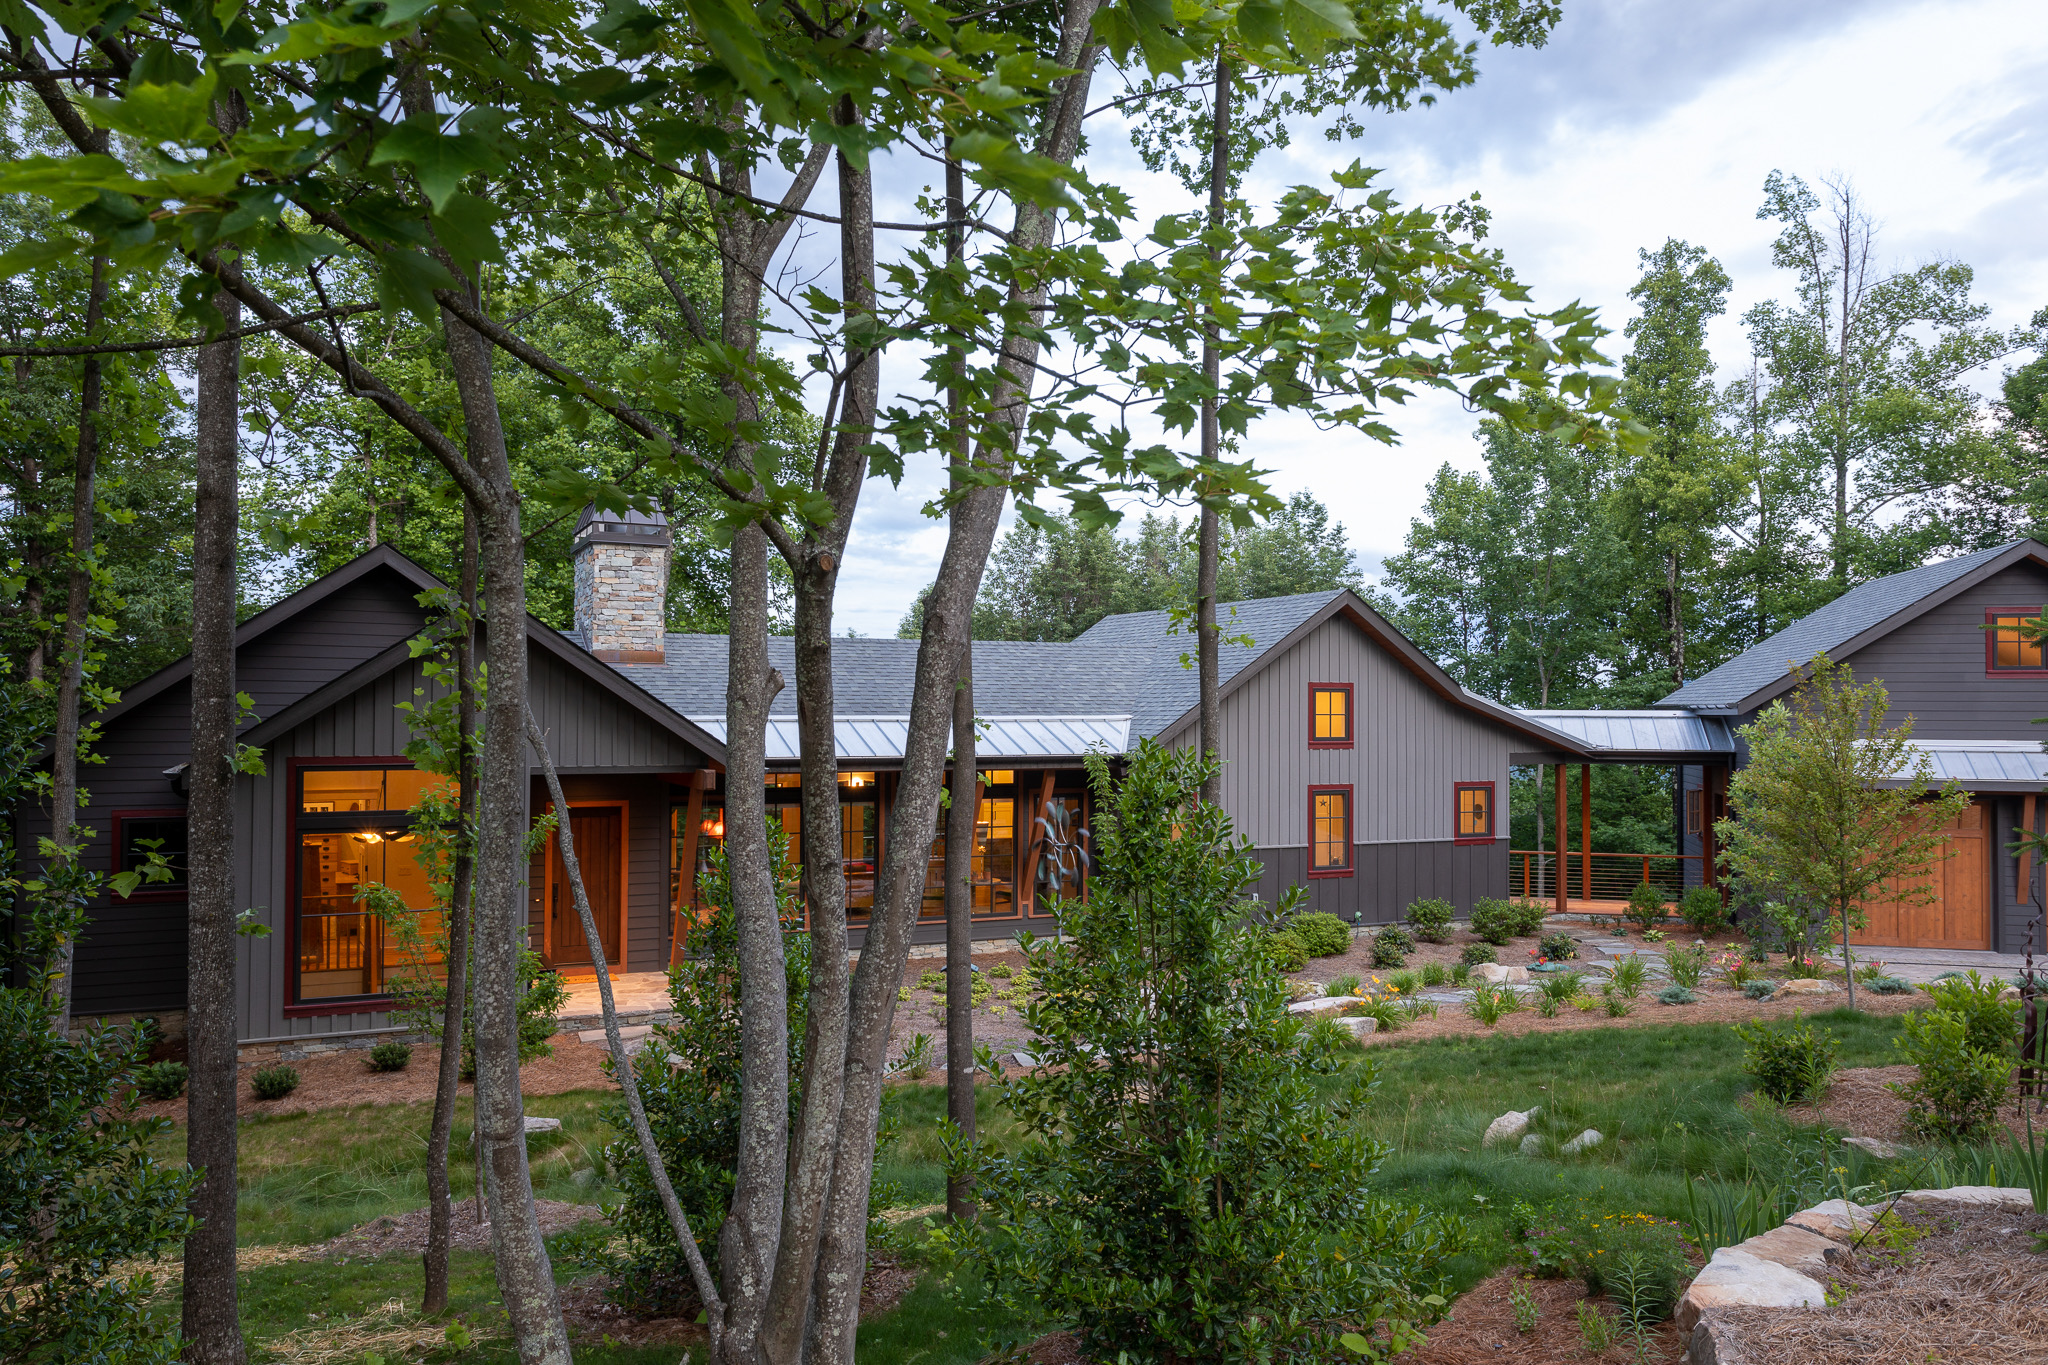 Modern Craftsman with Industrial touches and Craftsman flair in the woods of Western North Carolina